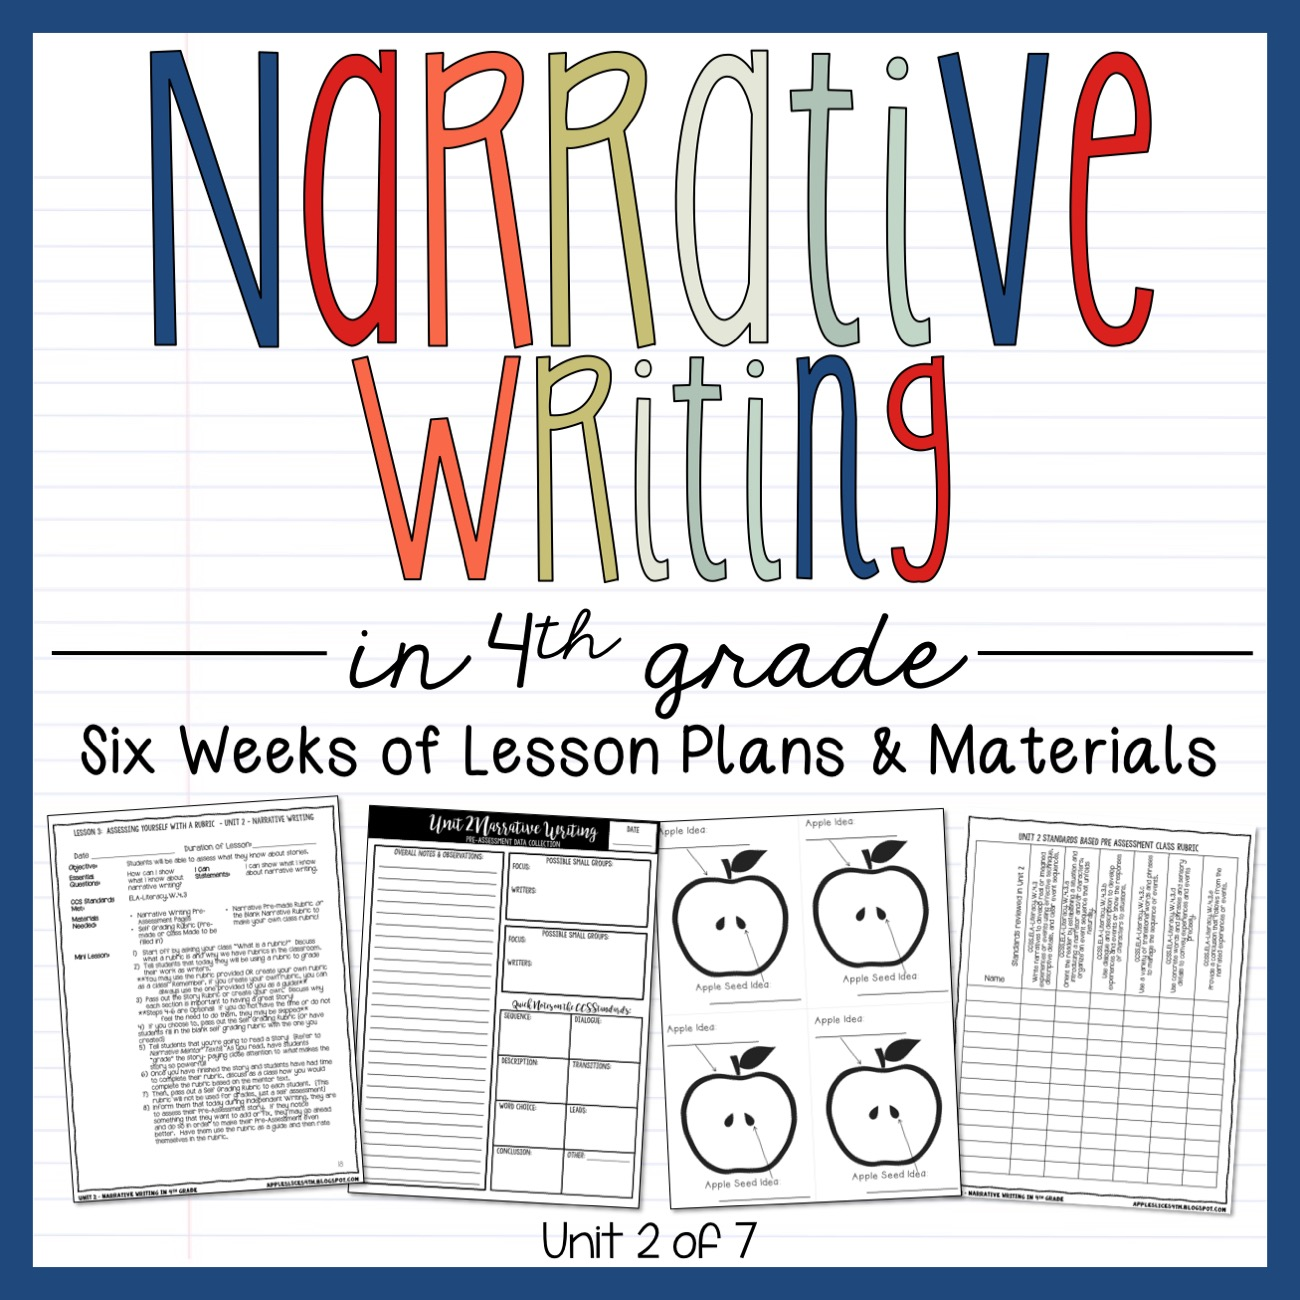 Narrative Writing 4th Grade Writing Unit